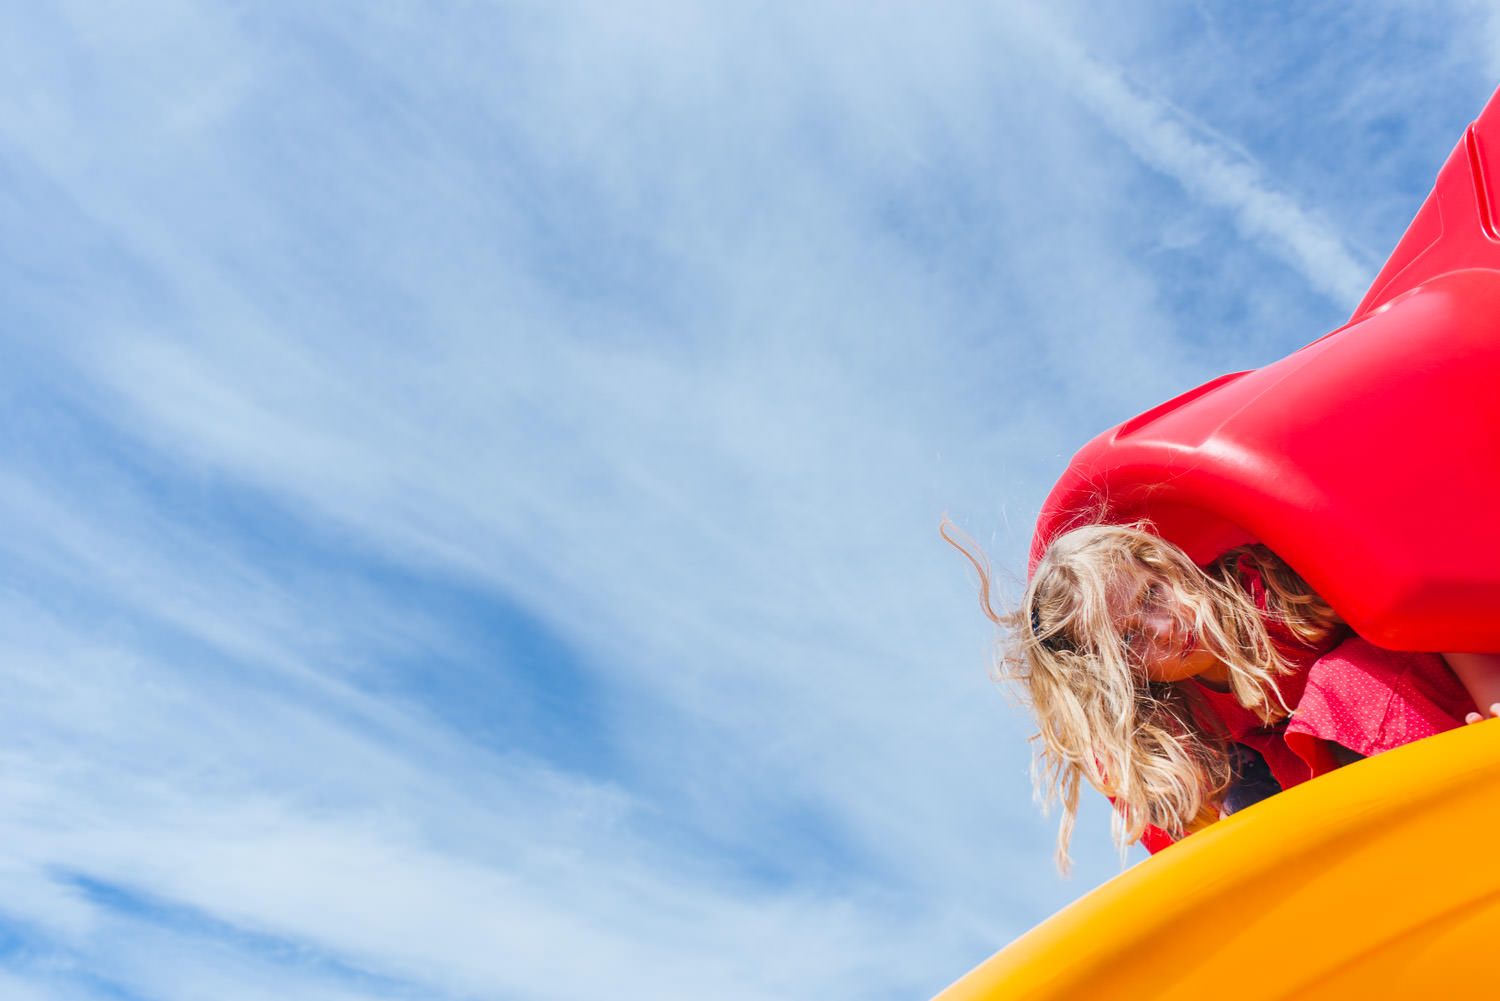 A little girl goes down a brightly colored slide.